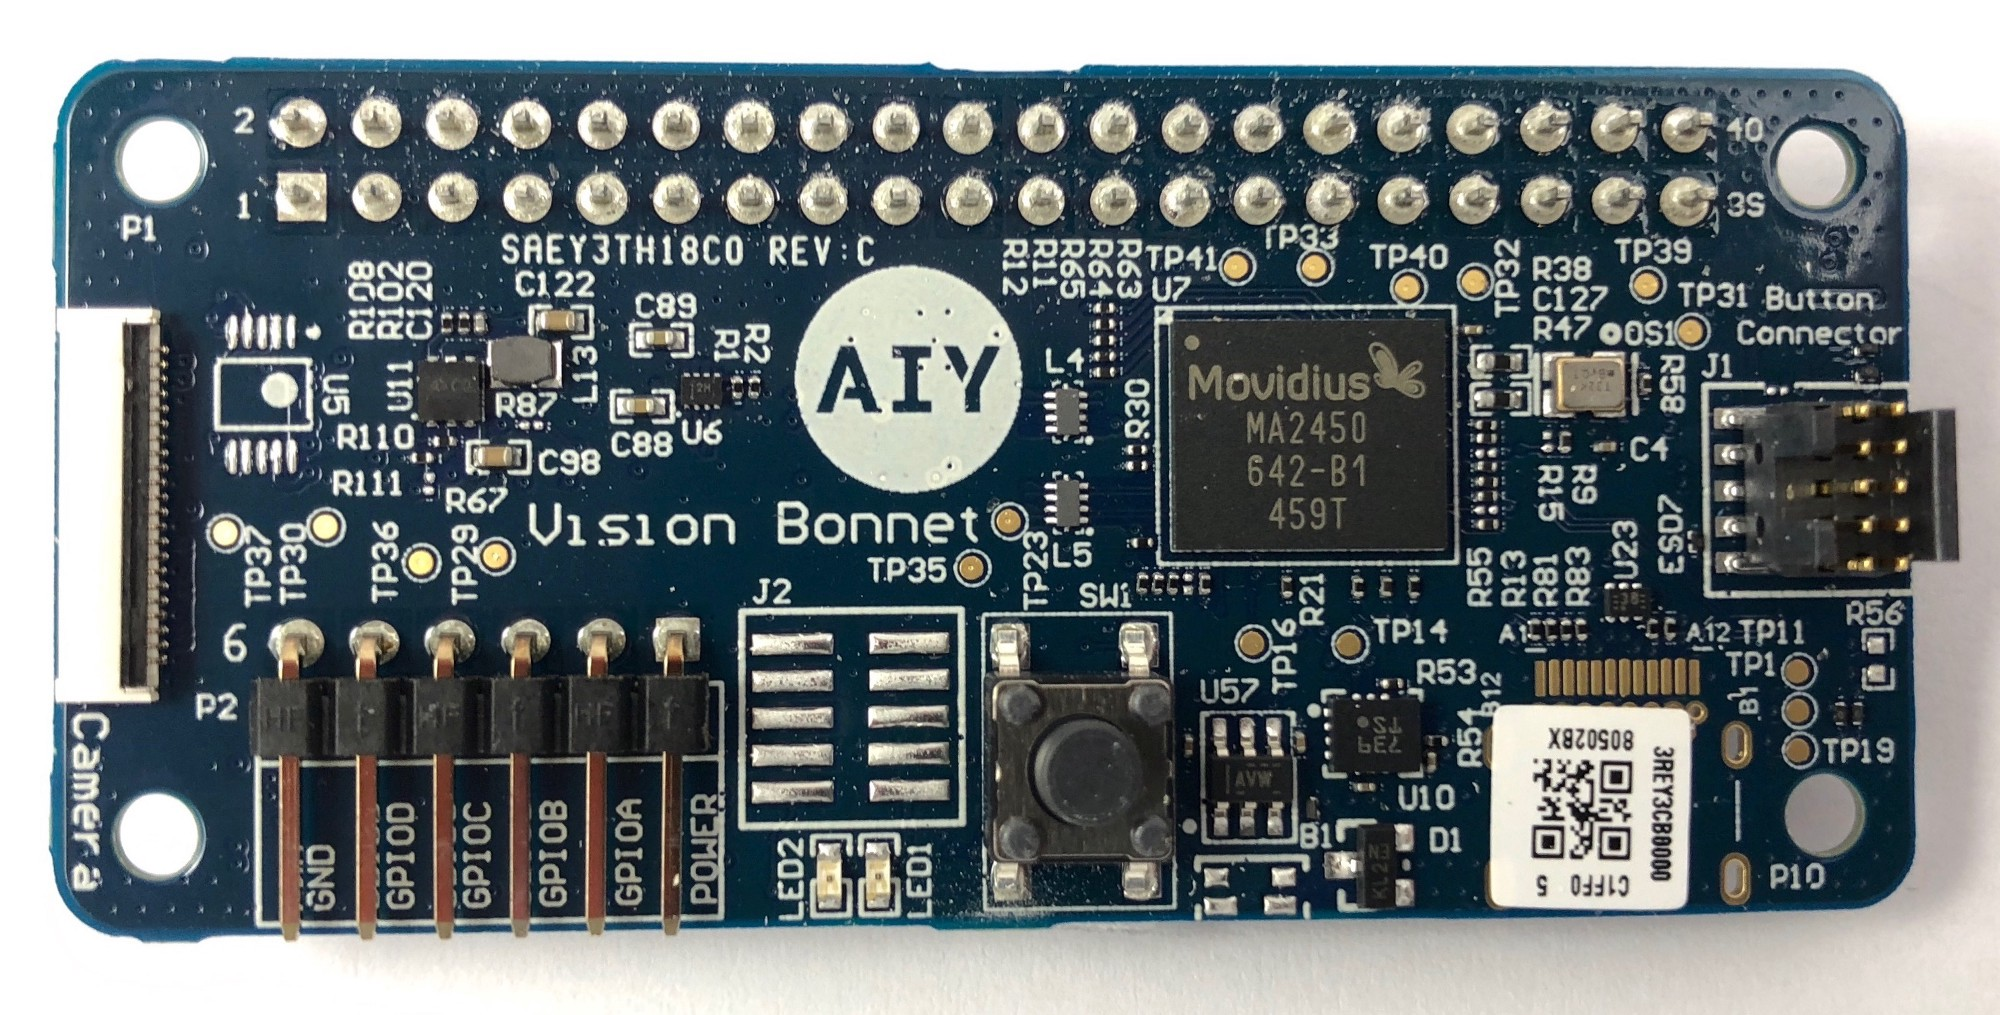 Do It Yourself Artificial Intelligence Alasdair Allan Medium Voice Recognition System And Embedded Controllers The Aiy Projects Vision Bonnet With Intel Movidius Chip